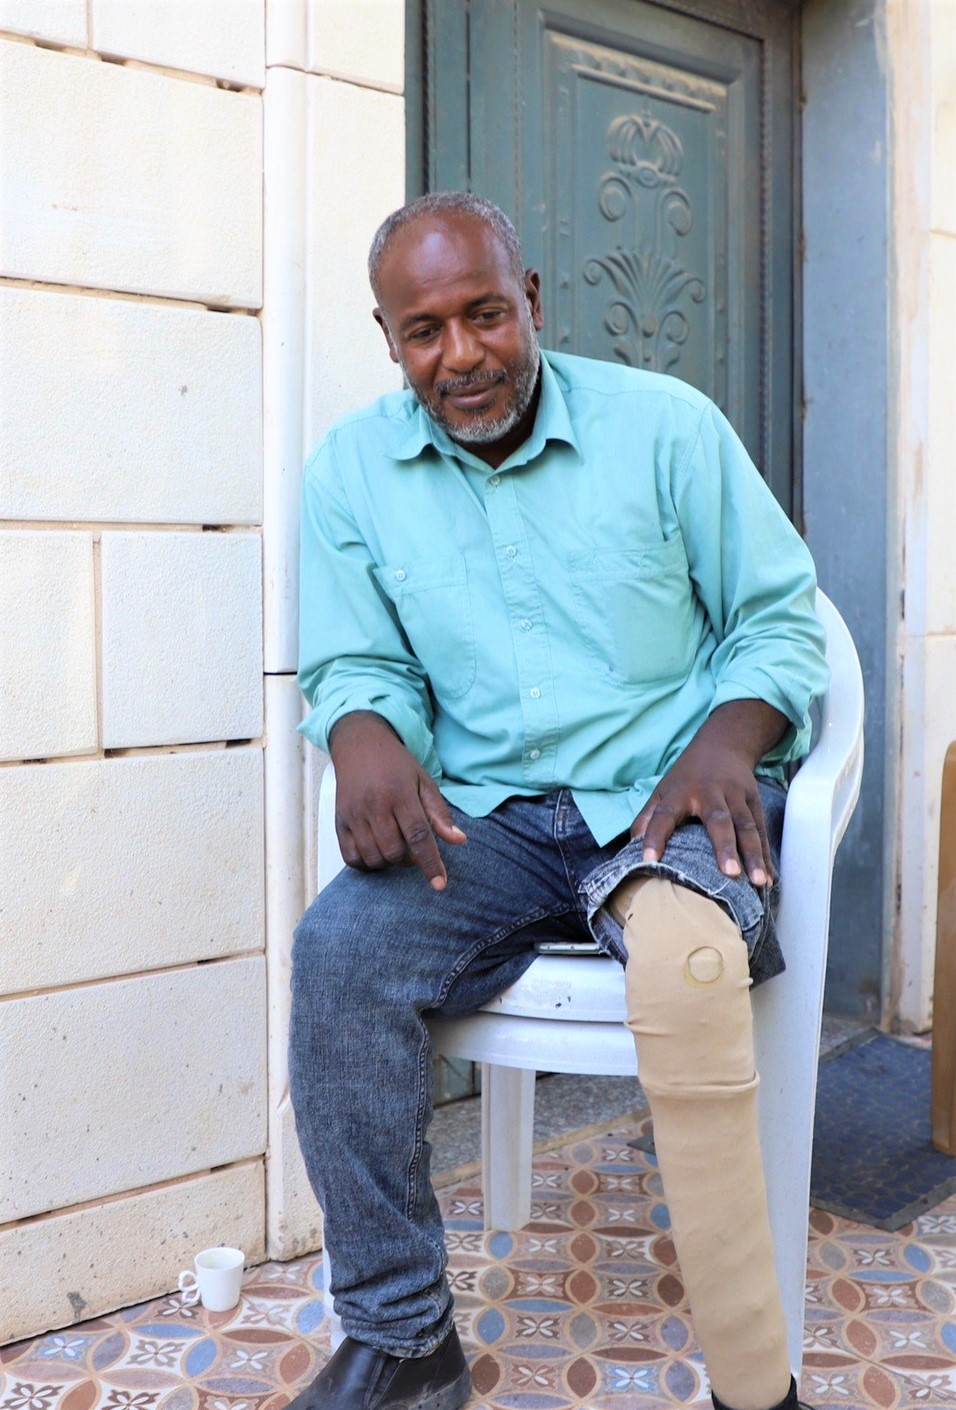 Joma'a Abu-Jabal shows the prosthetic leg he uses after Israeli forces shot his leg which was later amputated